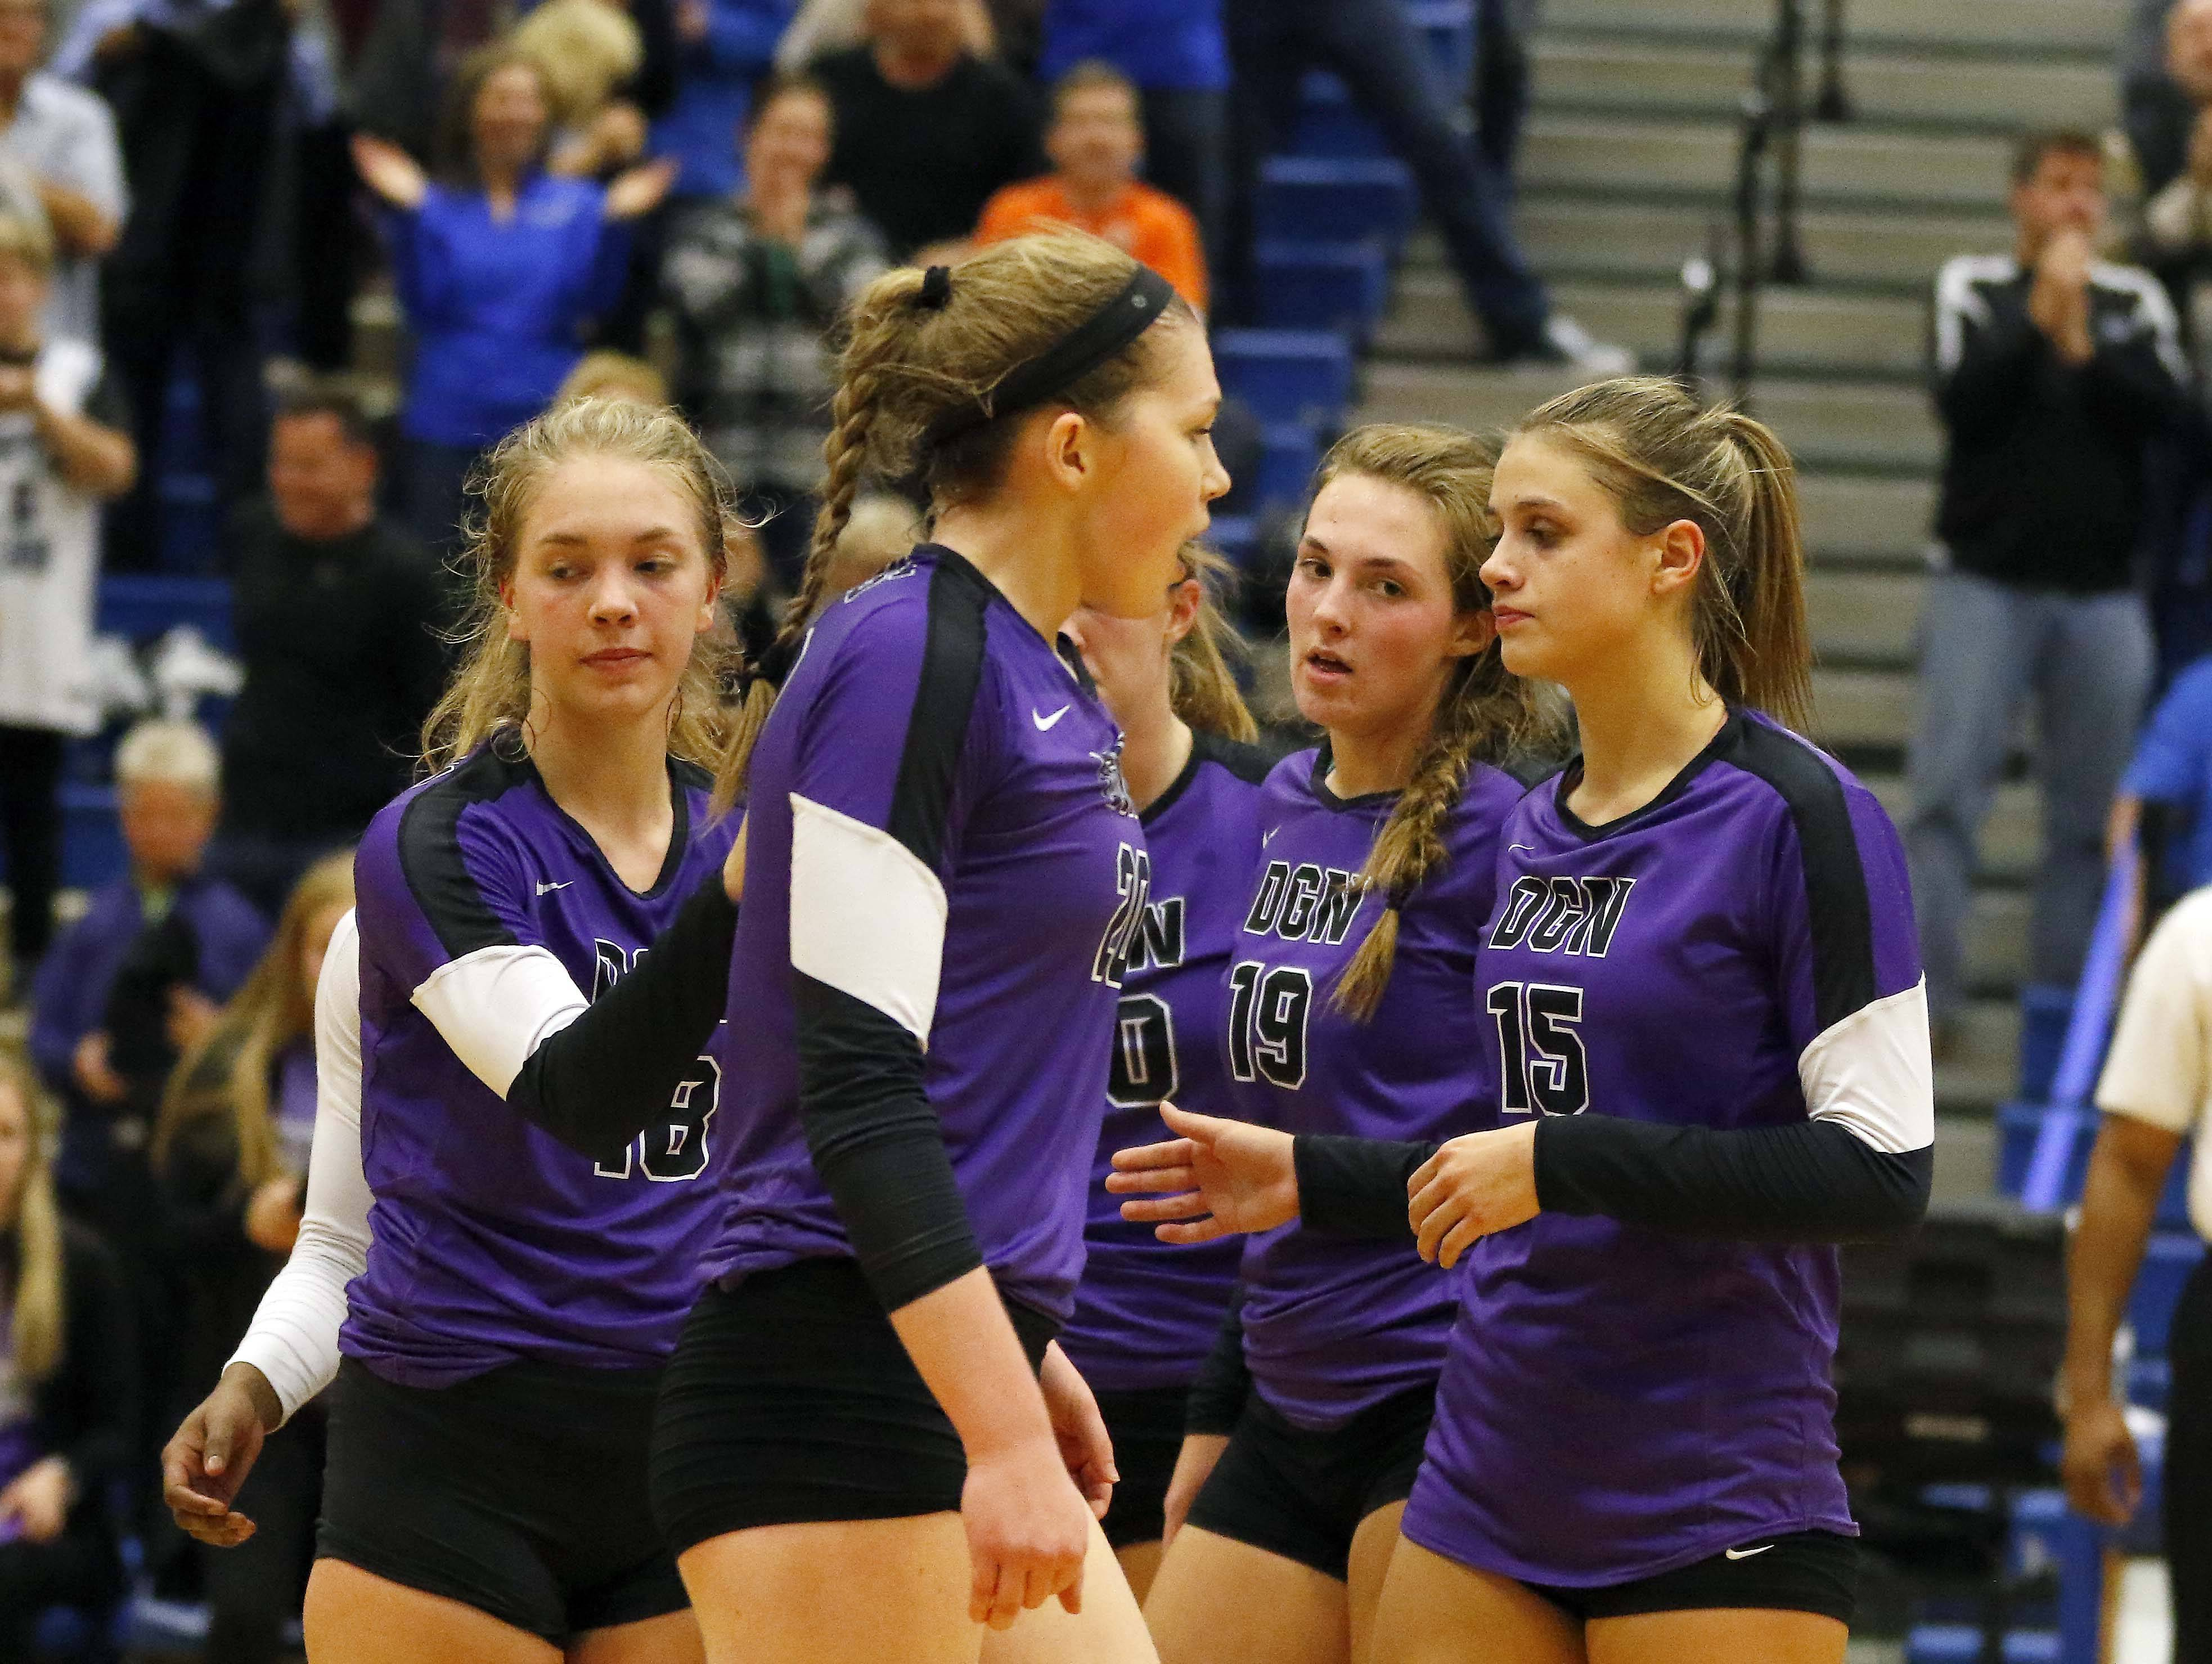 Downers Grove North's reacts after losing to St. Charles North Friday in the Geneva volleyball supersectional.